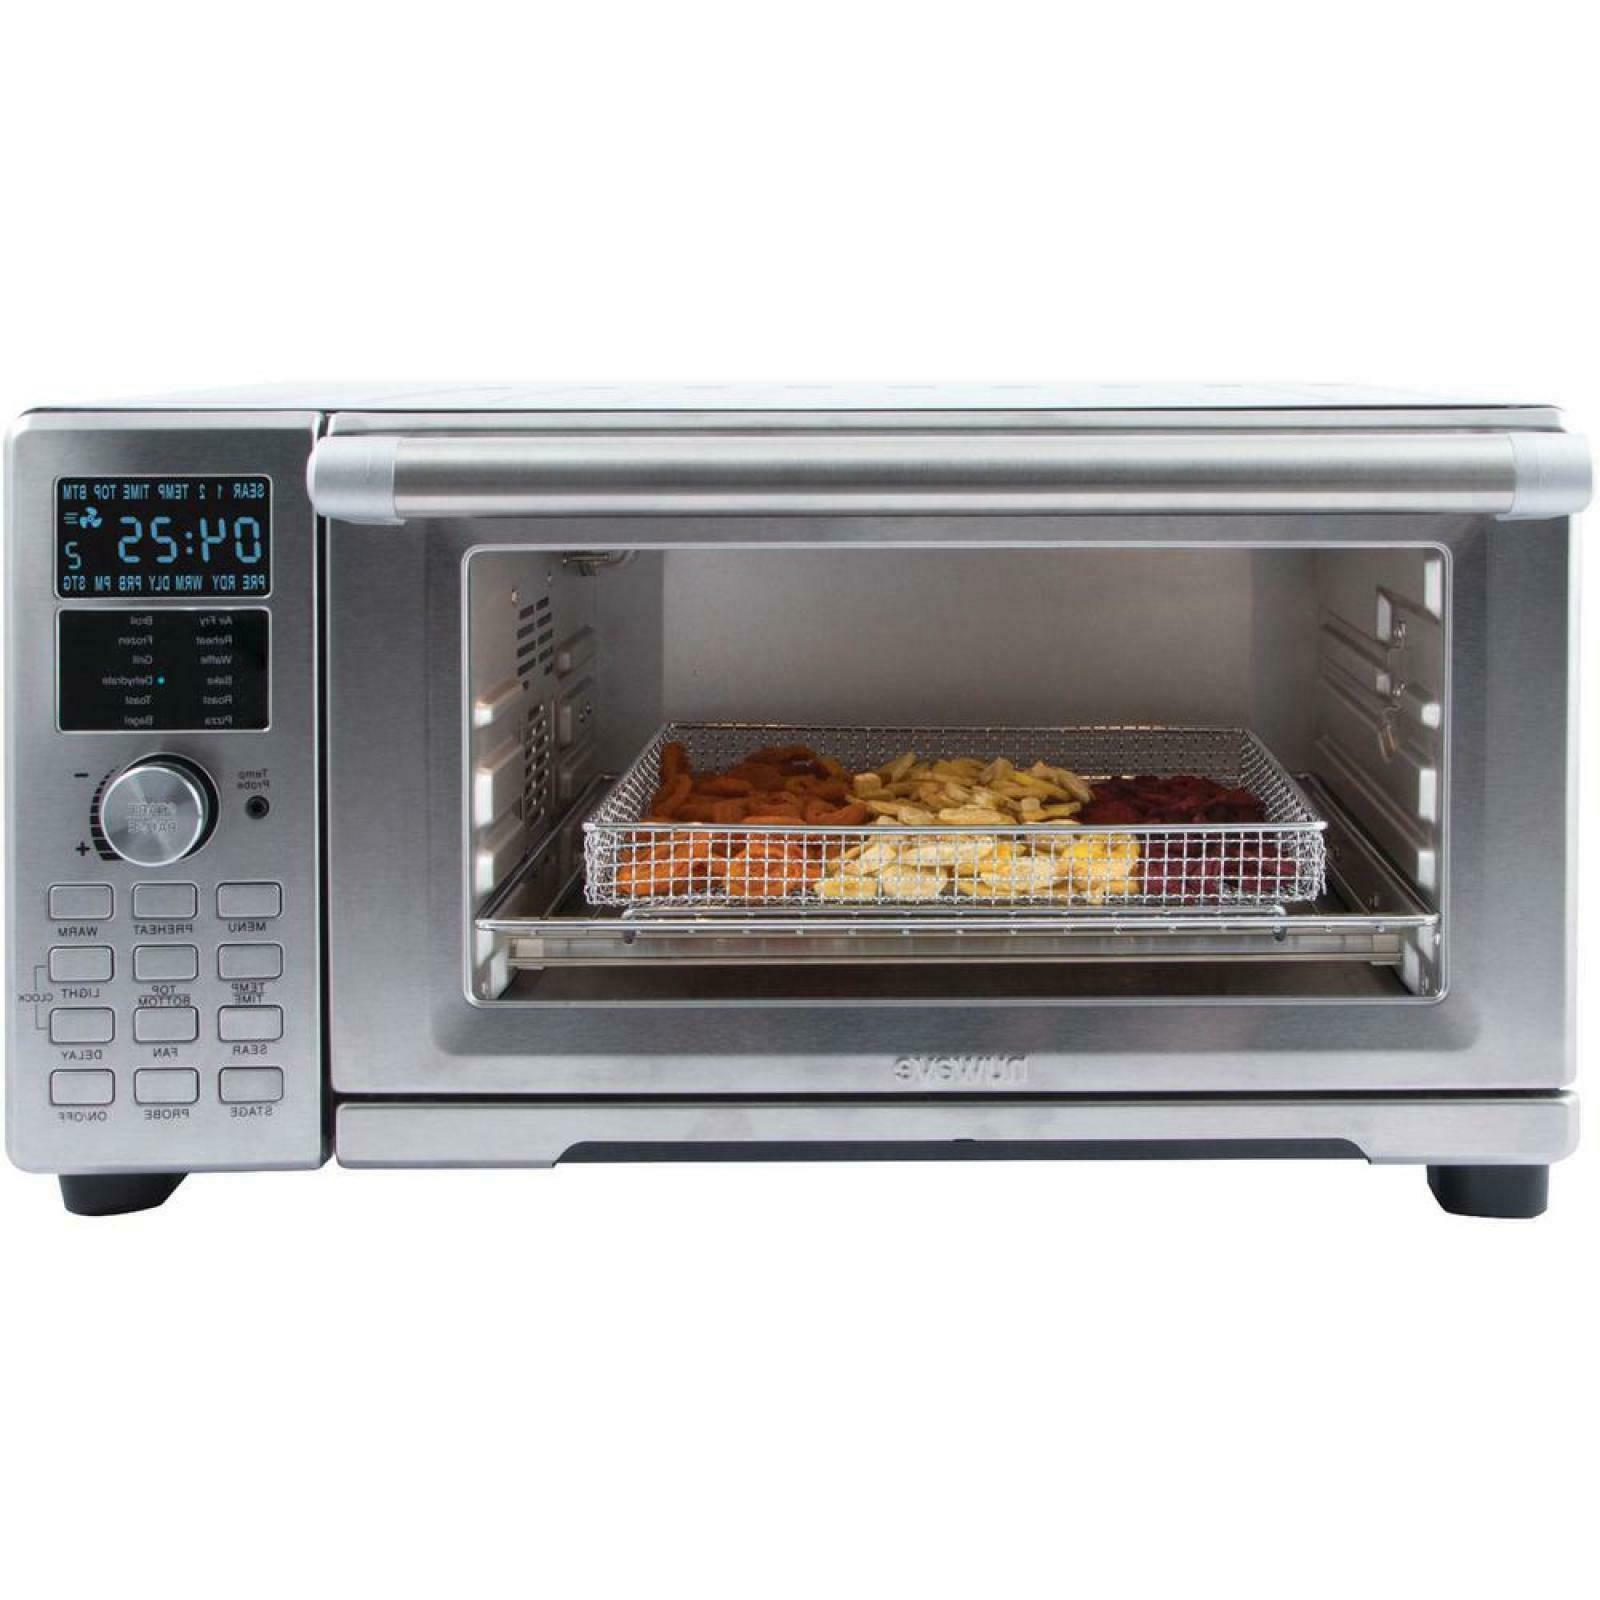 Bravo 1800 4Slice Stainless Steel Toaster Oven Air Fryer Controls